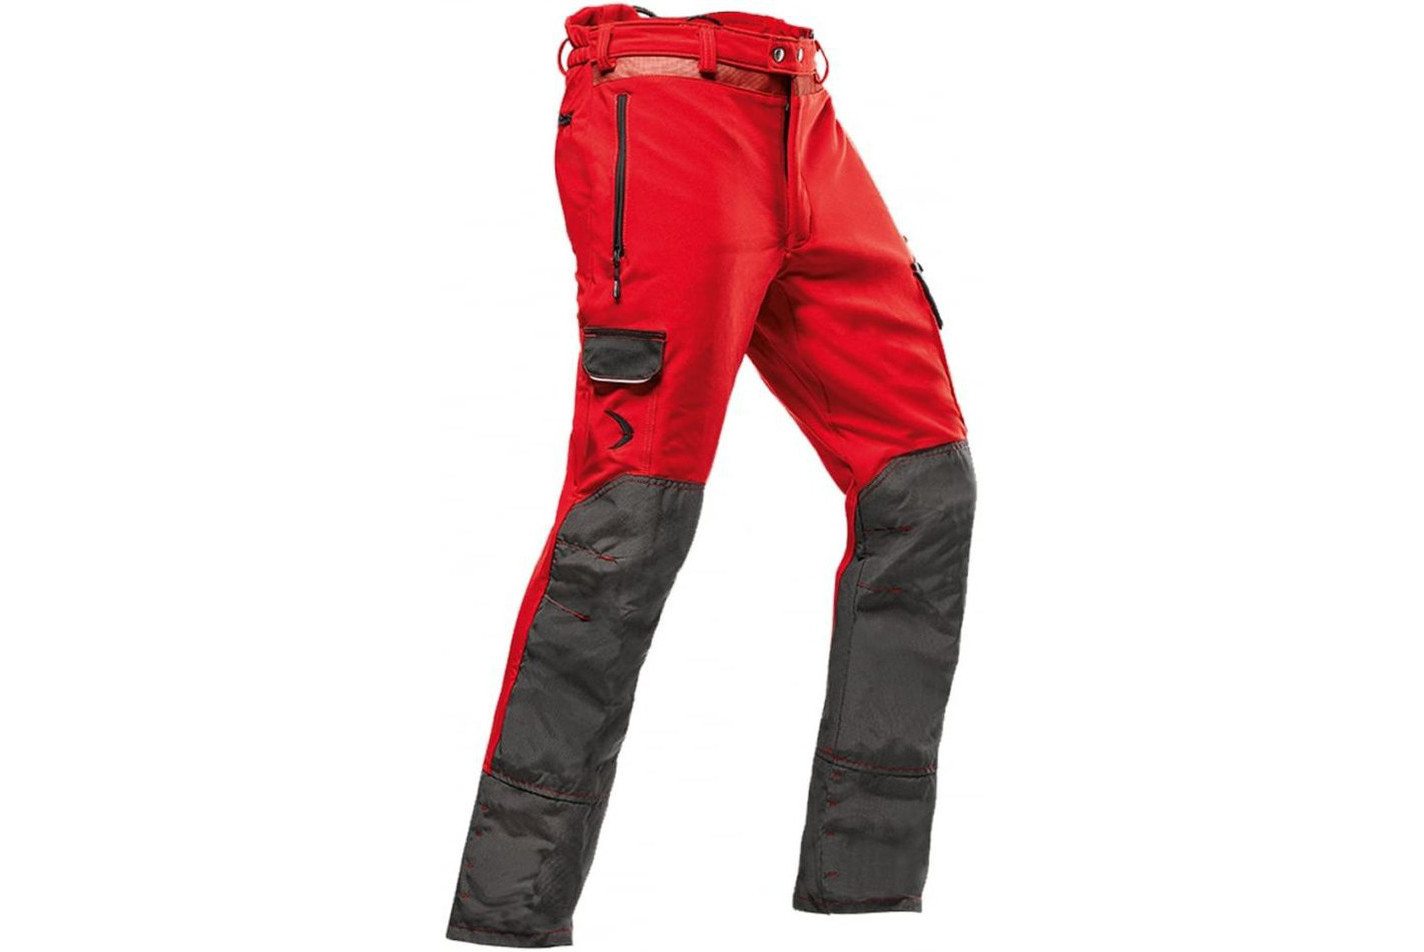 PANTALON ANTI COUPURE PFANNER ARBORIST